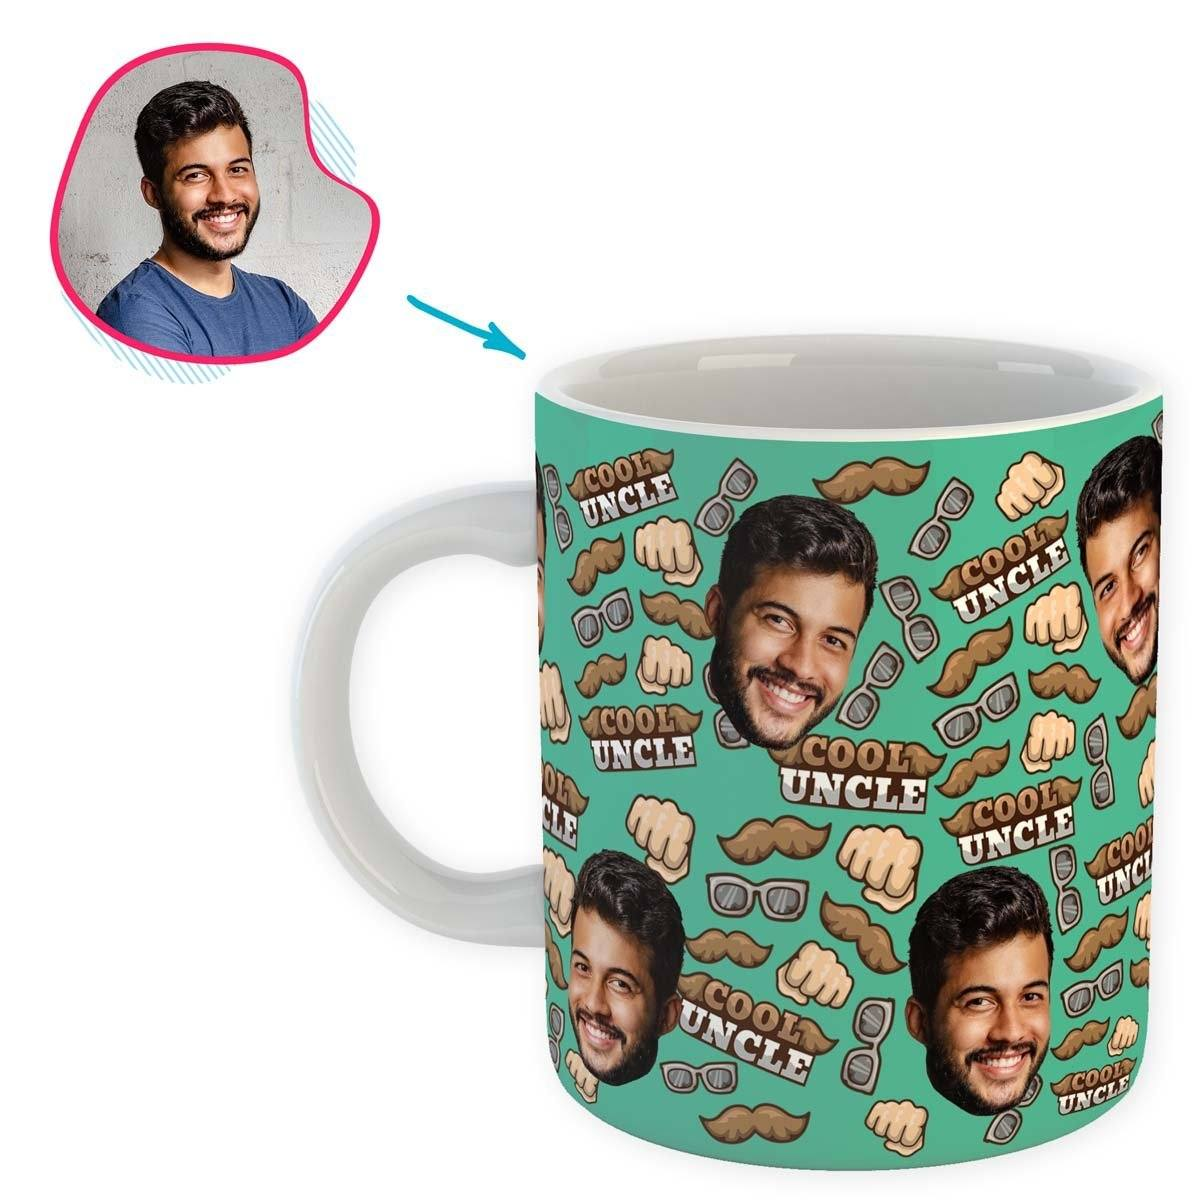 Mint Uncle personalized mug with photo of face printed on it